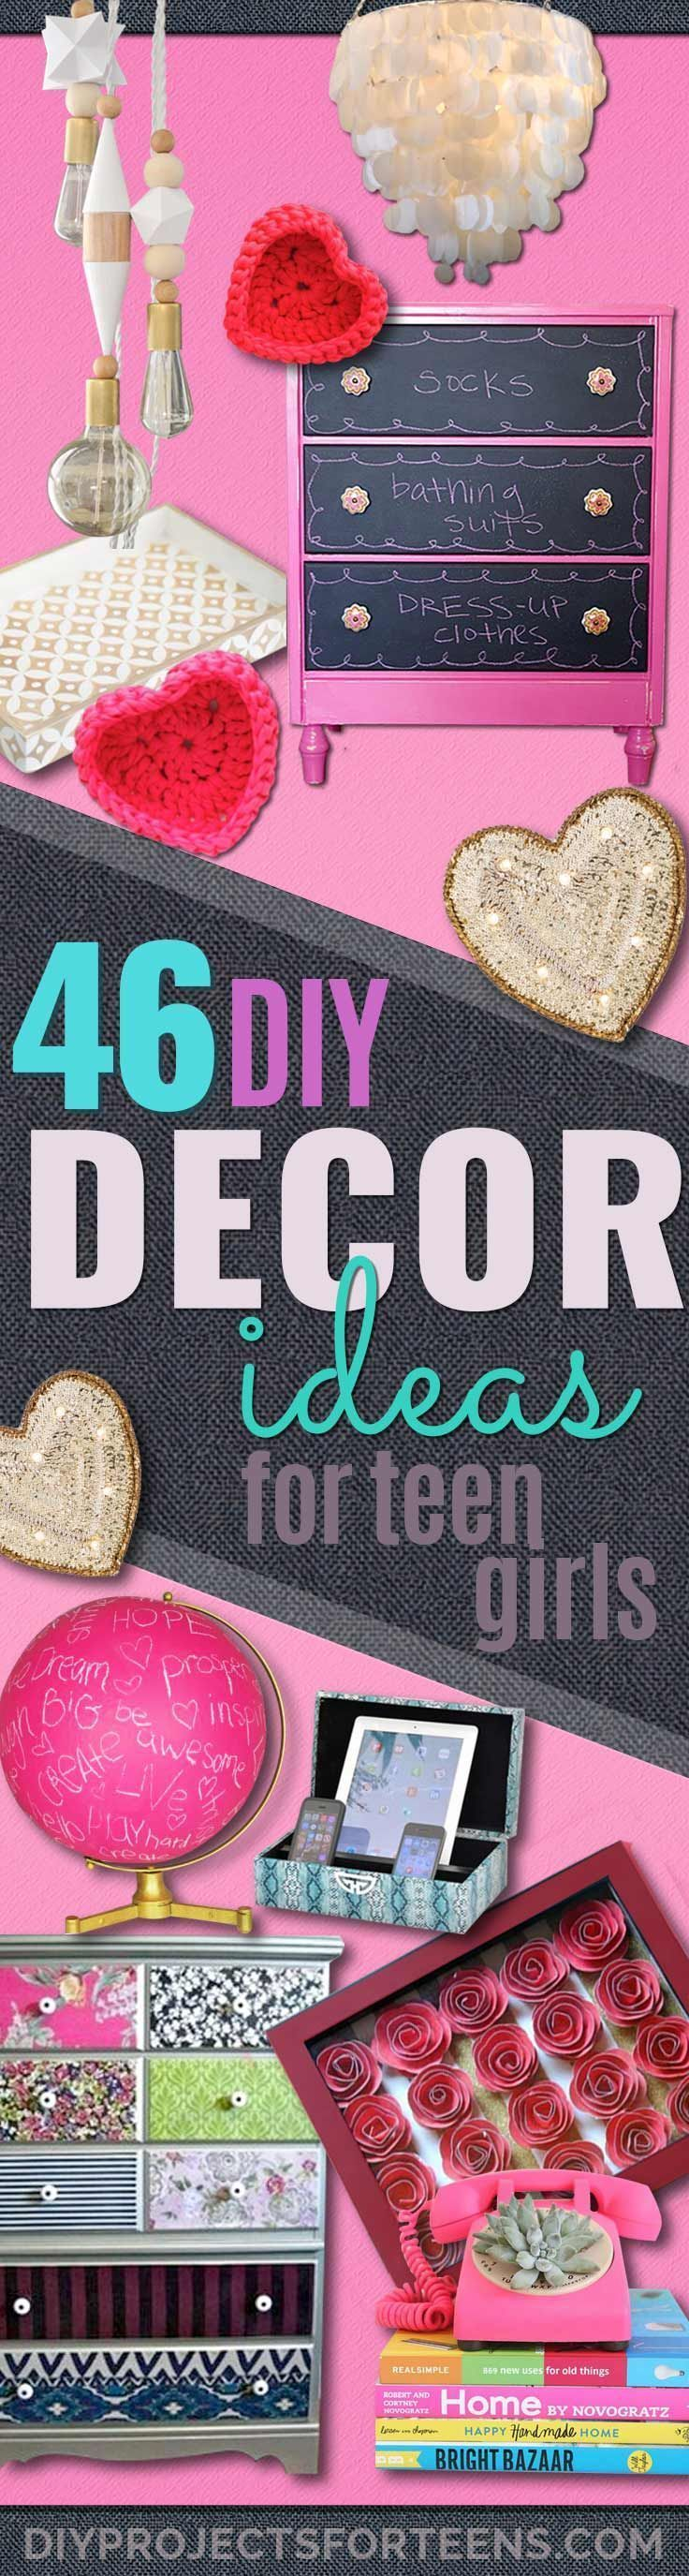 DIY Teen Room Decor Ideas for Girls   Fun Crafts and Decor For Tweens   Cool Bedroom Decor, Wall Art & Signs, Crafts, Bedding, Fun Do It Yourself Projects and Room Ideas for Small Spaces http://diyprojectsforteens.com/diy-teen-bedroom-ideas-girls